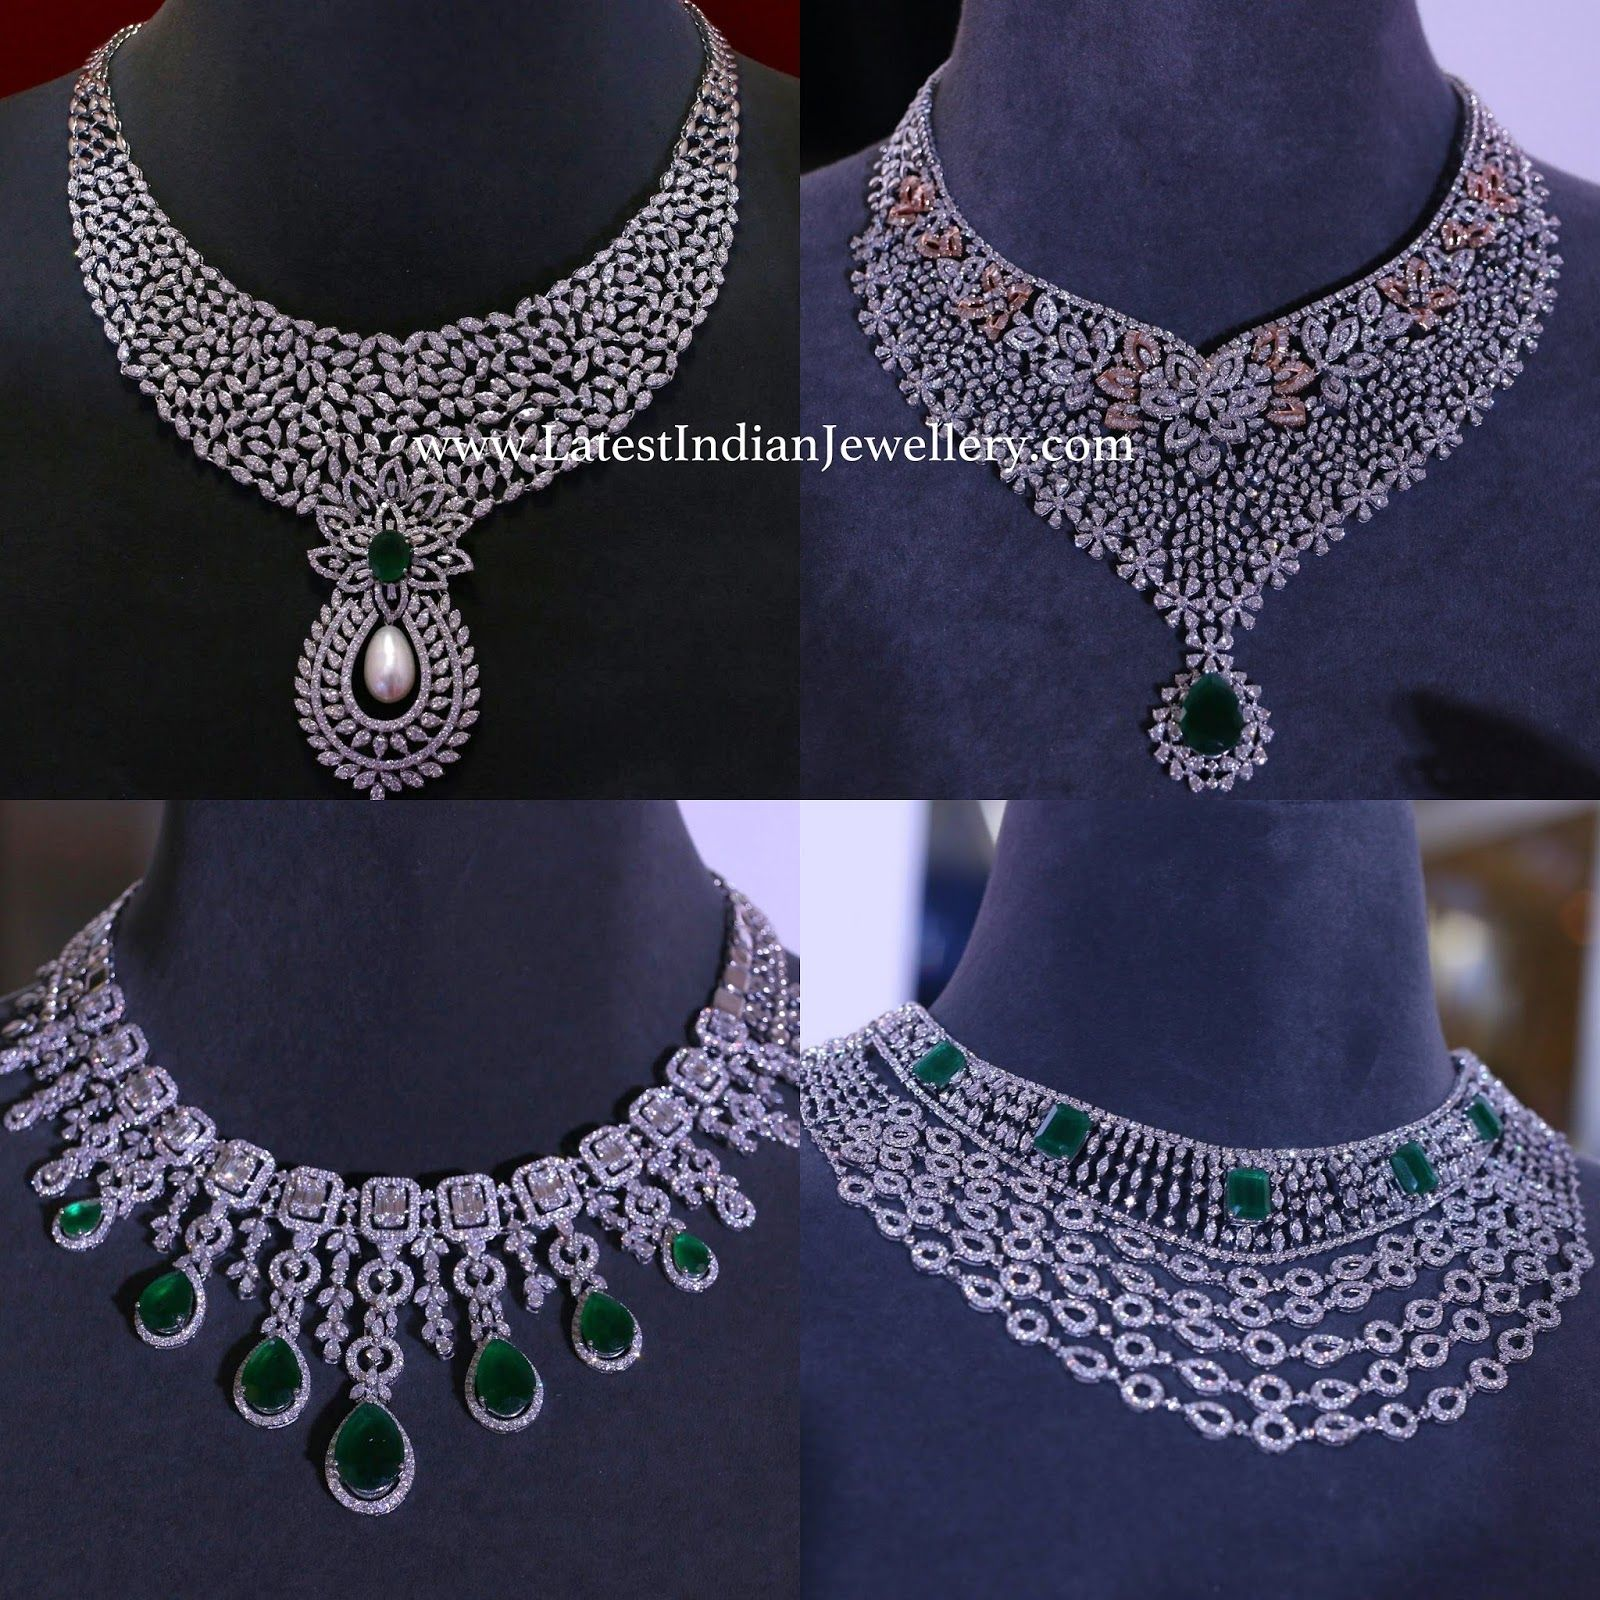 Grand diamond necklaces from tanishq necklaces pinterest joyas